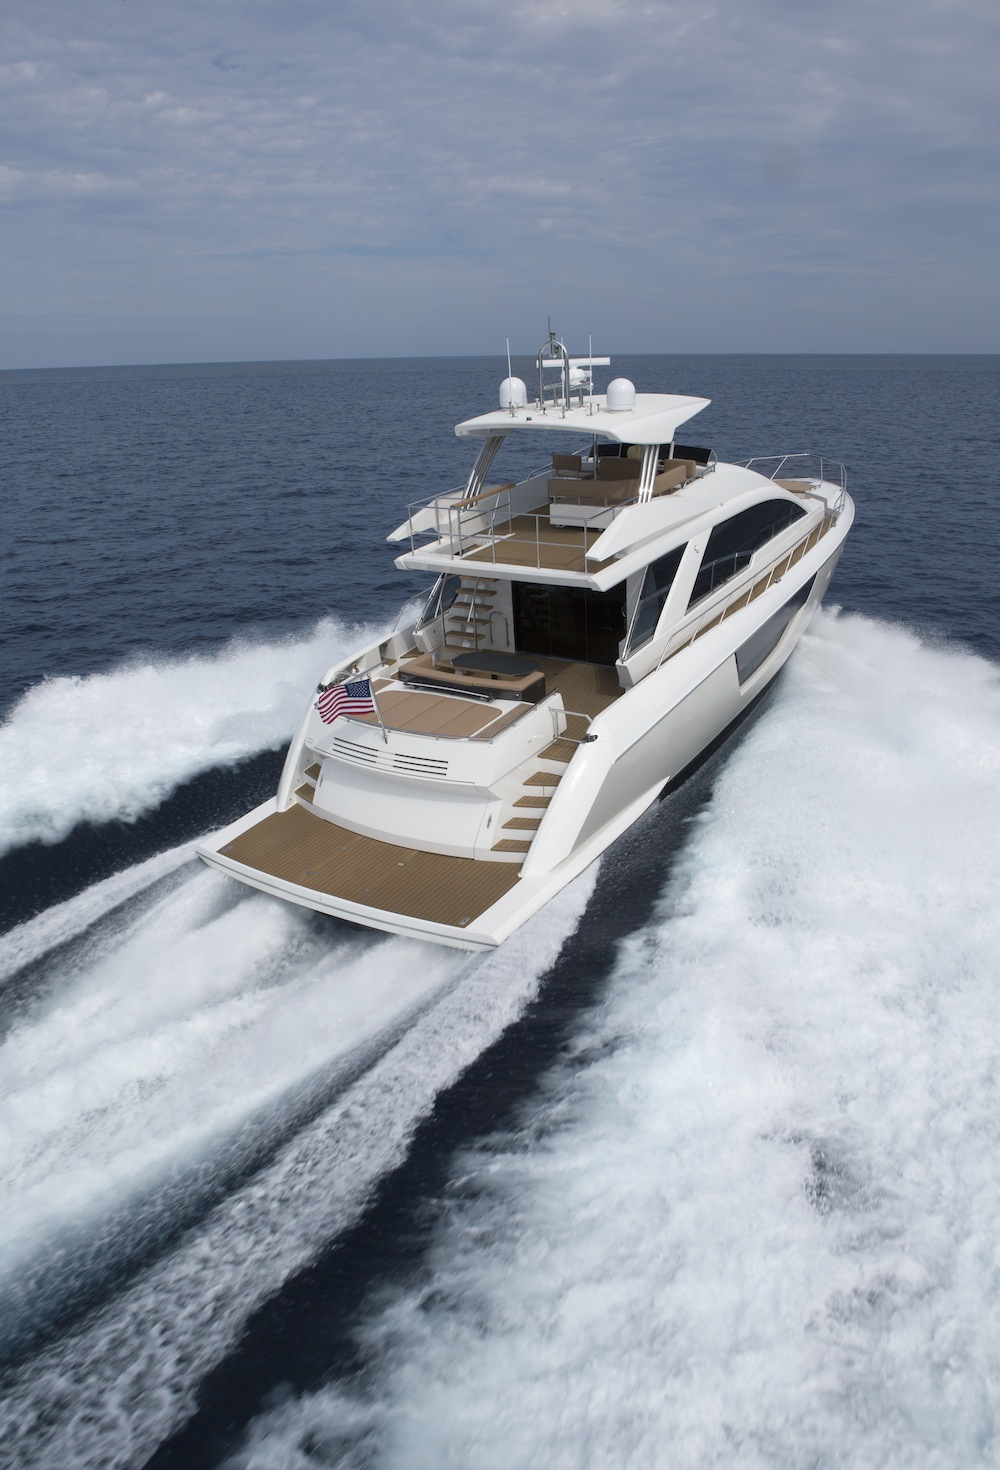 Cheoylee sport yachts